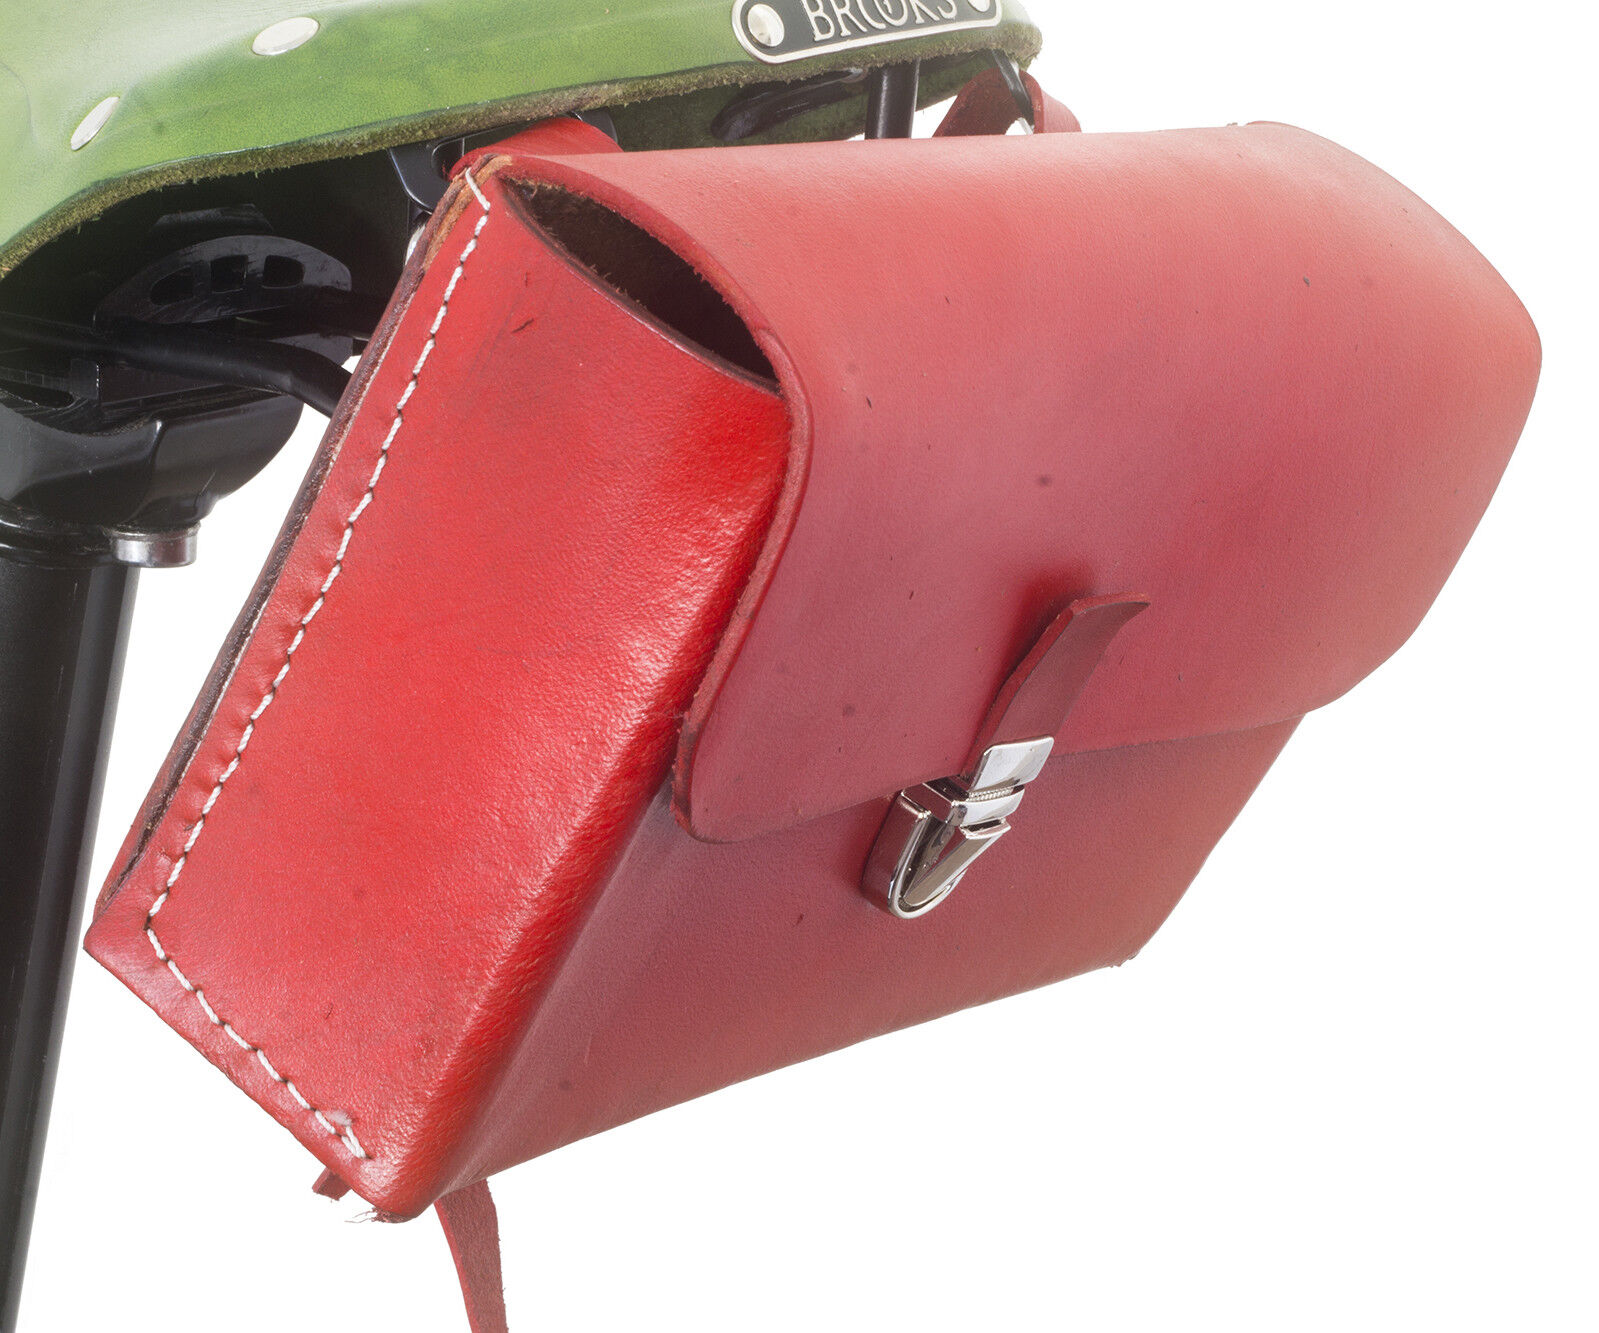 Leather Saddle Bag For  Bike SCARLET RED Limited Edition by London Craftwork L08  wholesale cheap and high quality